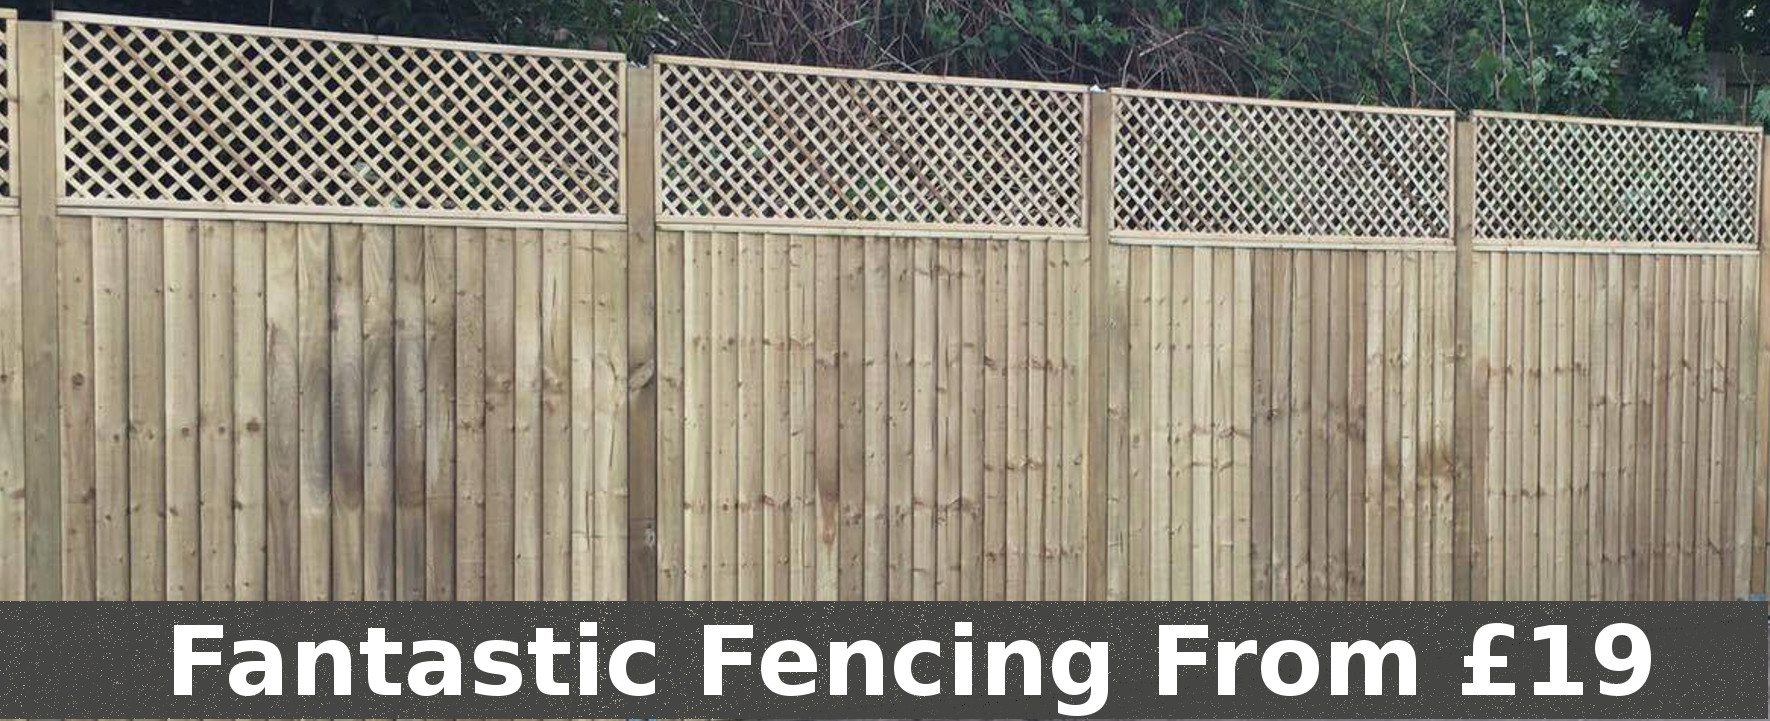 Fencing and Fence Panels from cheap prices!